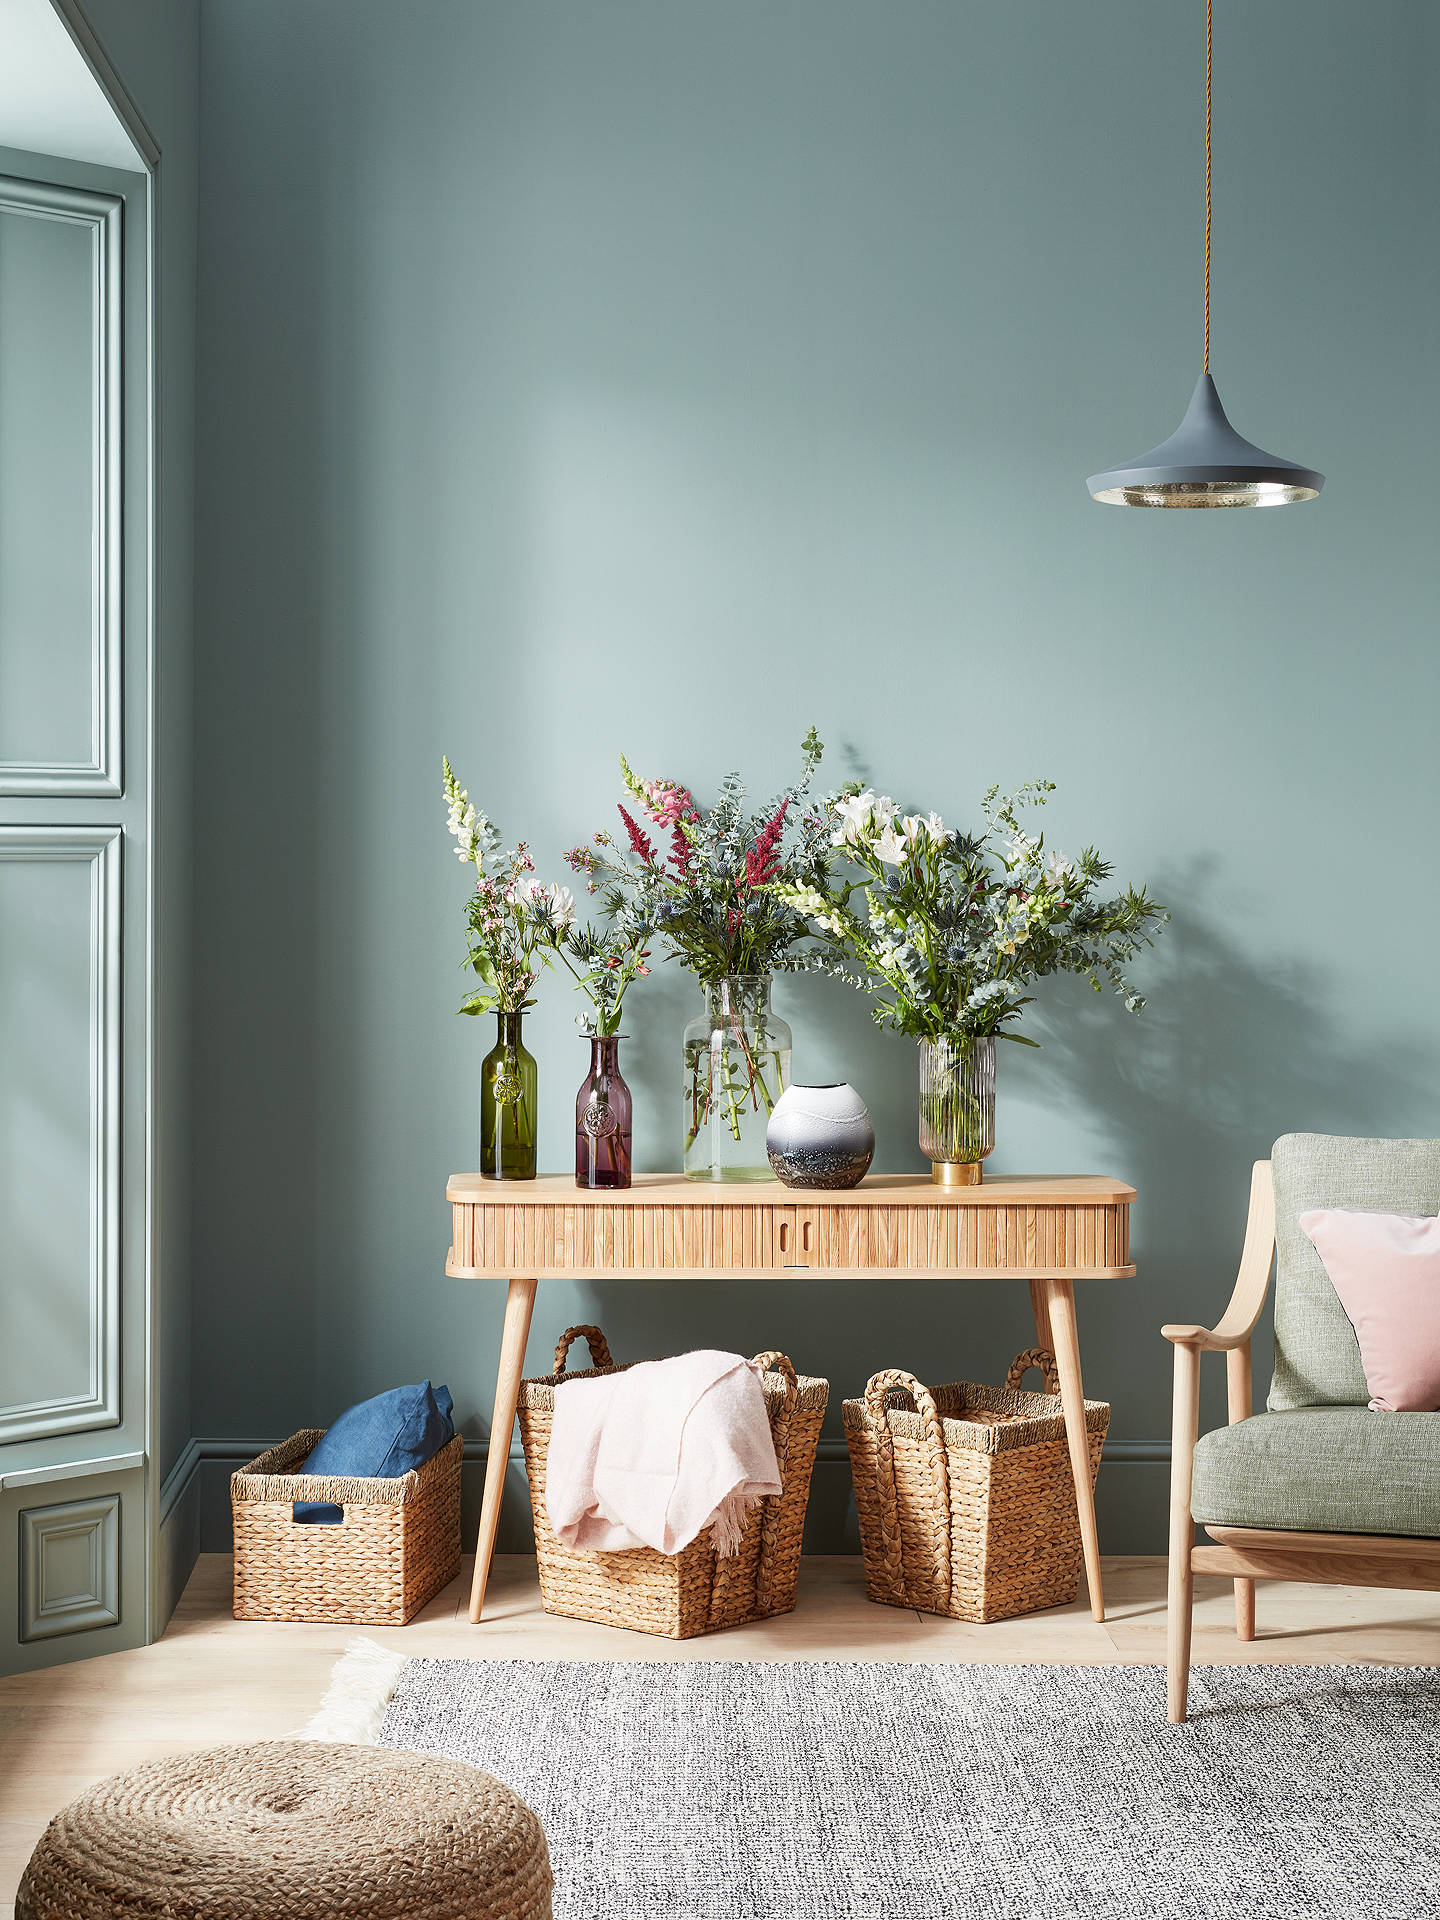 BuyJohn Lewis & Partners Country Water Hyacinth Storage Basket, Rectangular Online at johnlewis.com